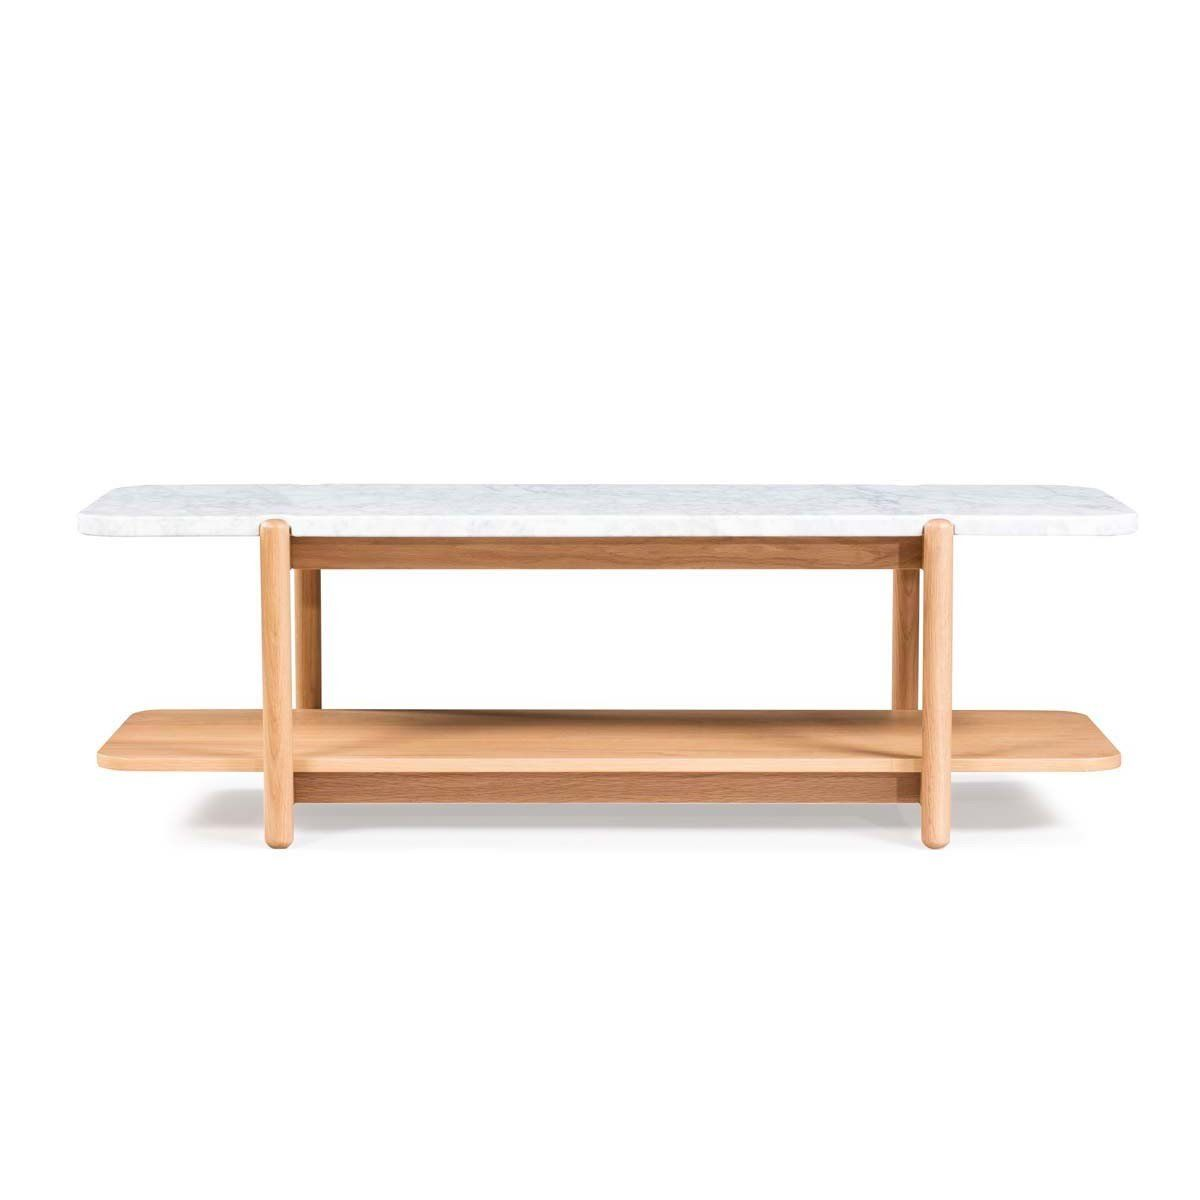 Norah Marble Coffee Table. Shelving UnitsStorage ...  sc 1 st  Pinterest & Norah Marble Coffee Table   Marble top Solid oak and Multifunctional